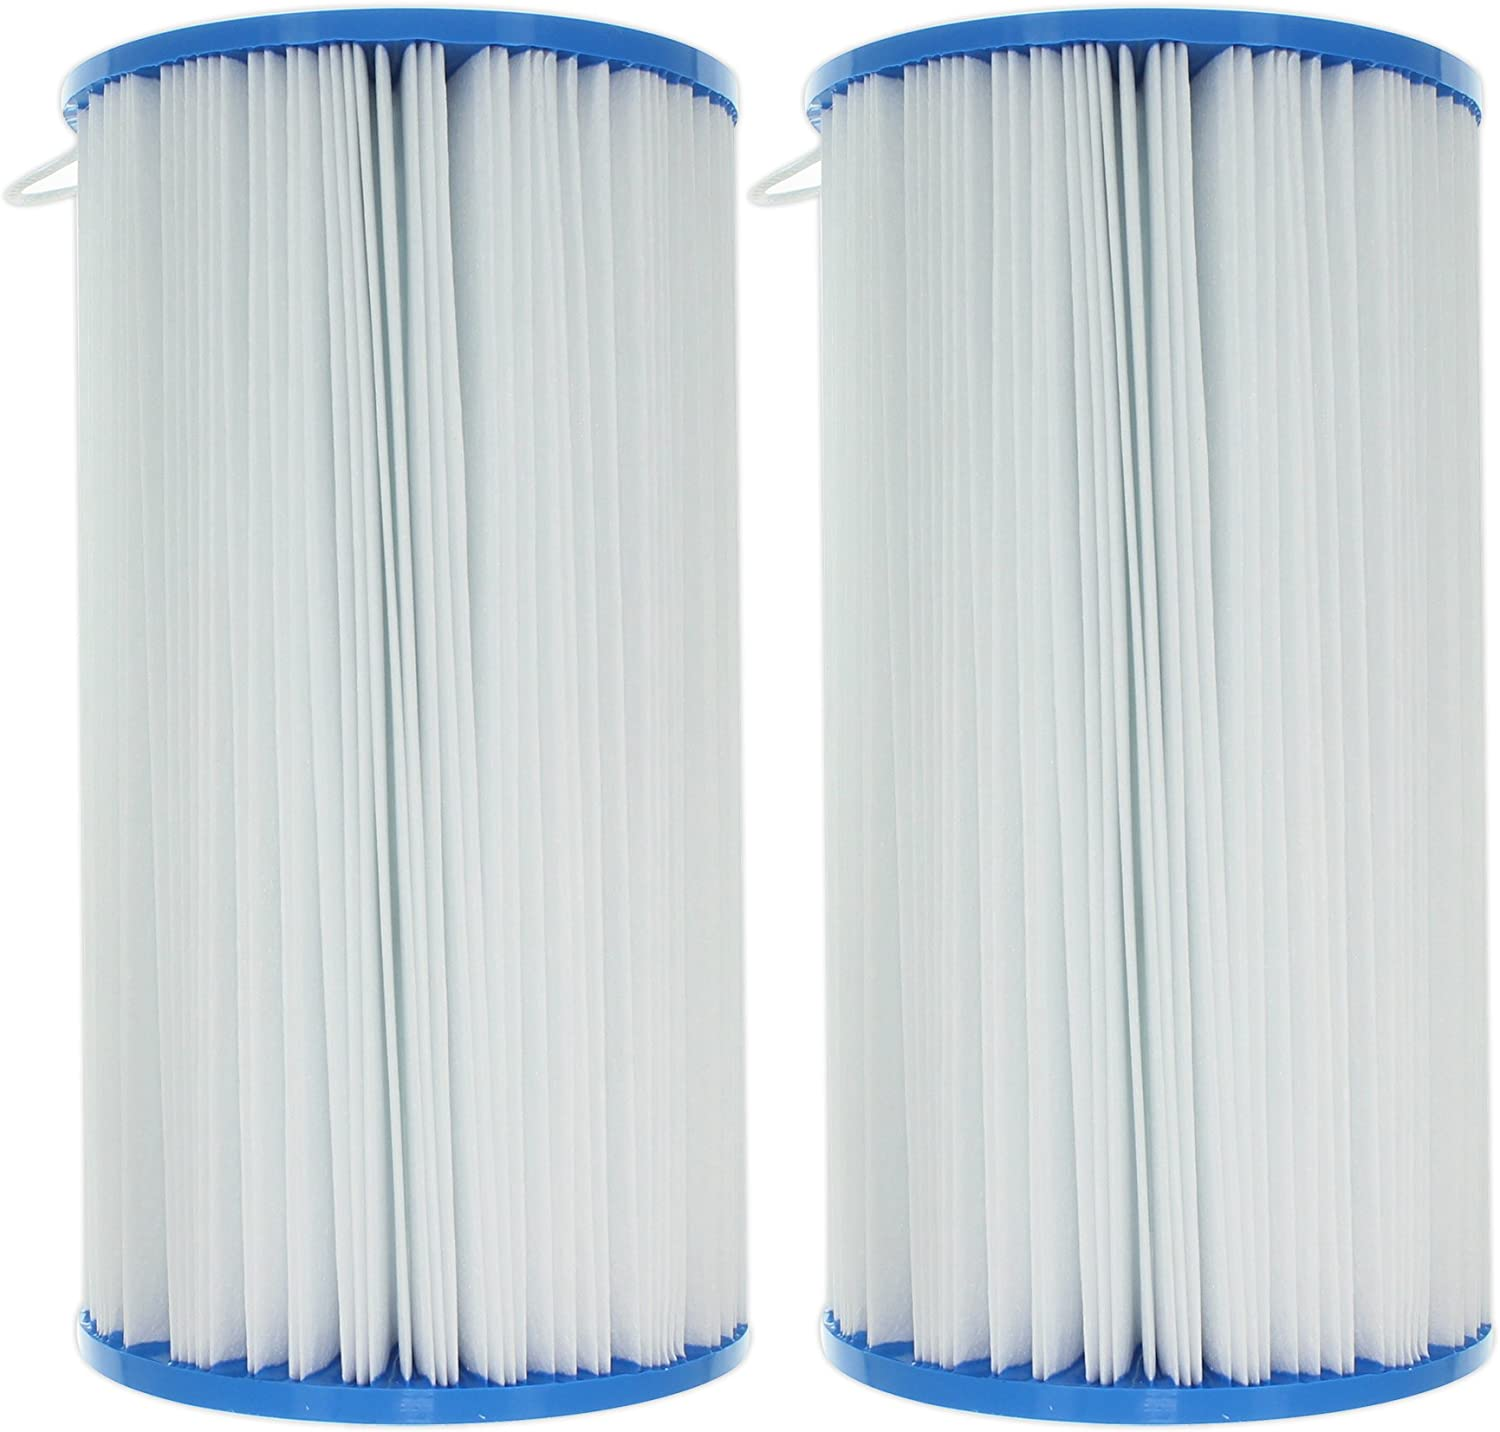 2 Max 60% OFF Guardian Pool Spa Filter Replaces Aero C-5601 : Unicel Jacuzzi Direct store